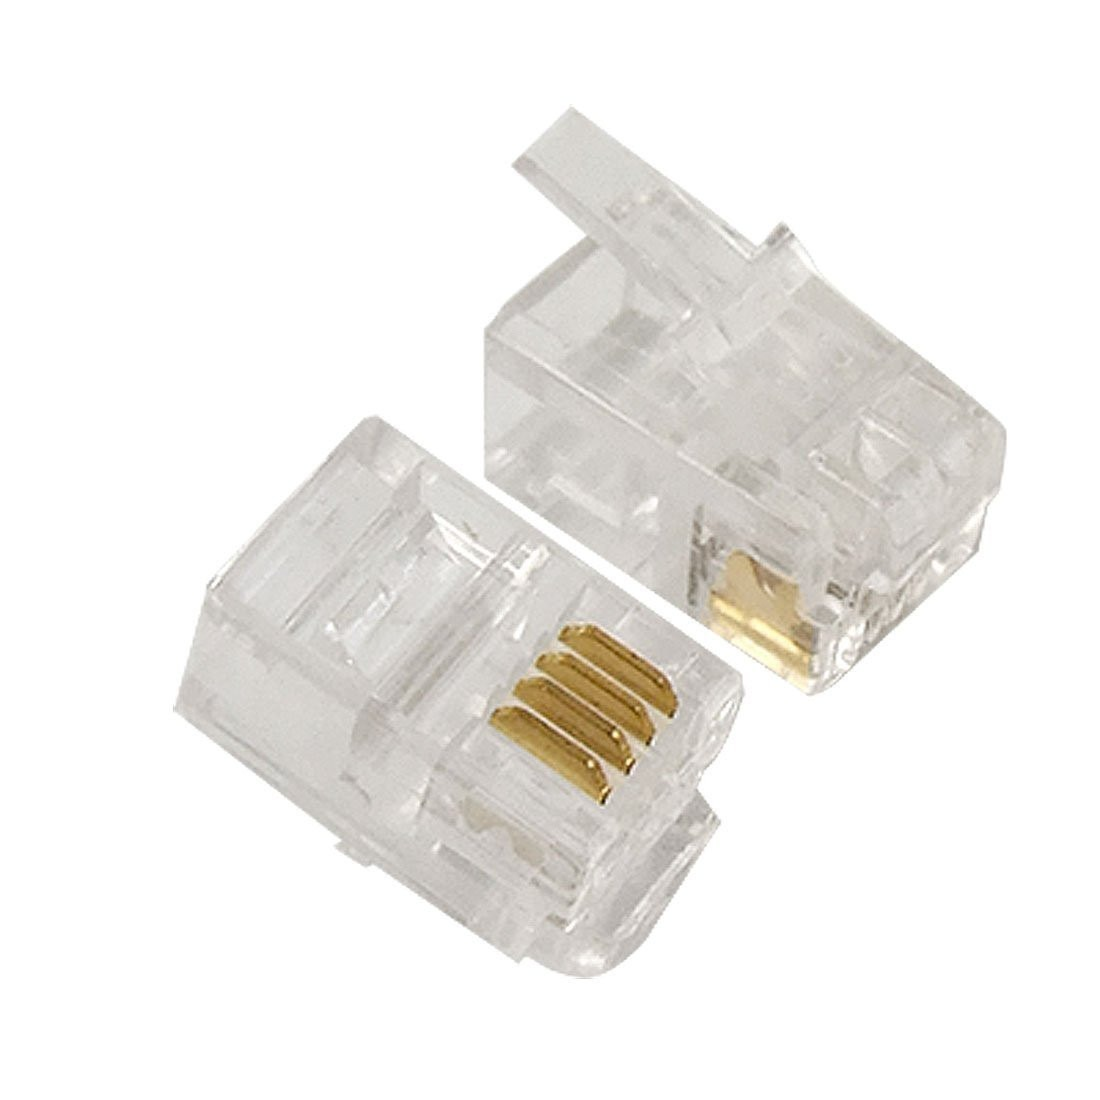 4p4c Connector Wiring Diagram Library Rj45 For Phone